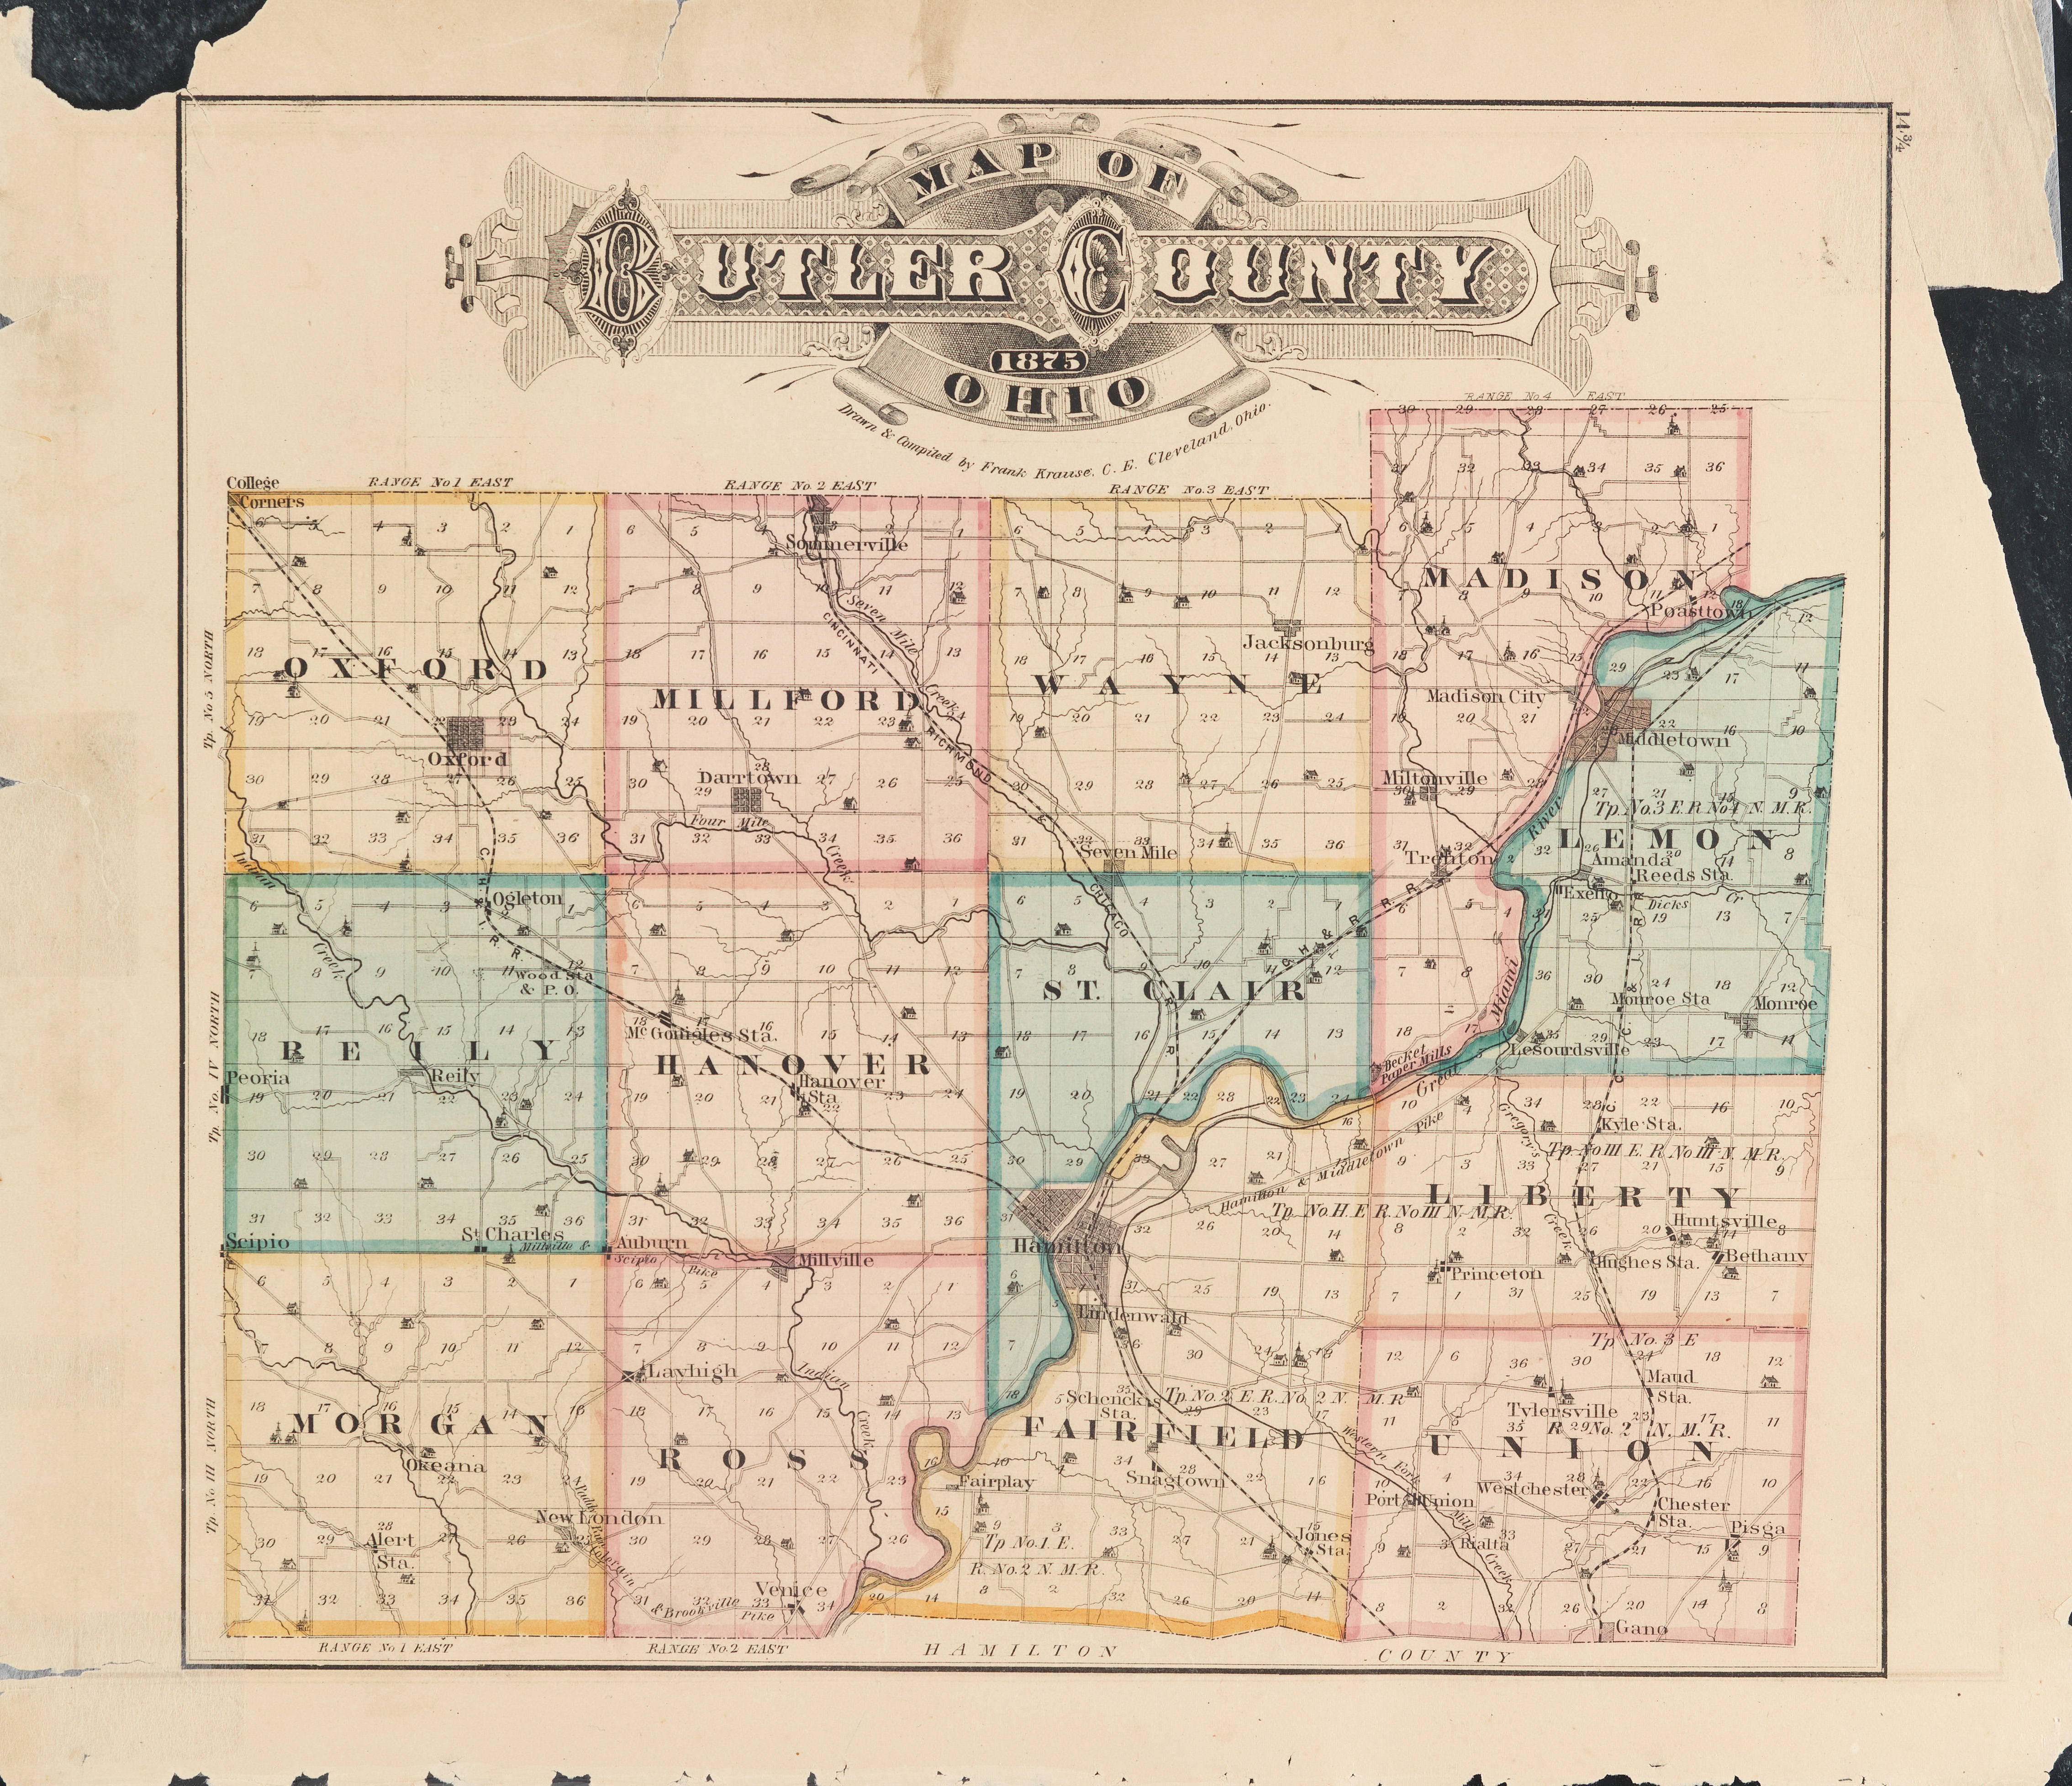 Butler County 1875 Atlas